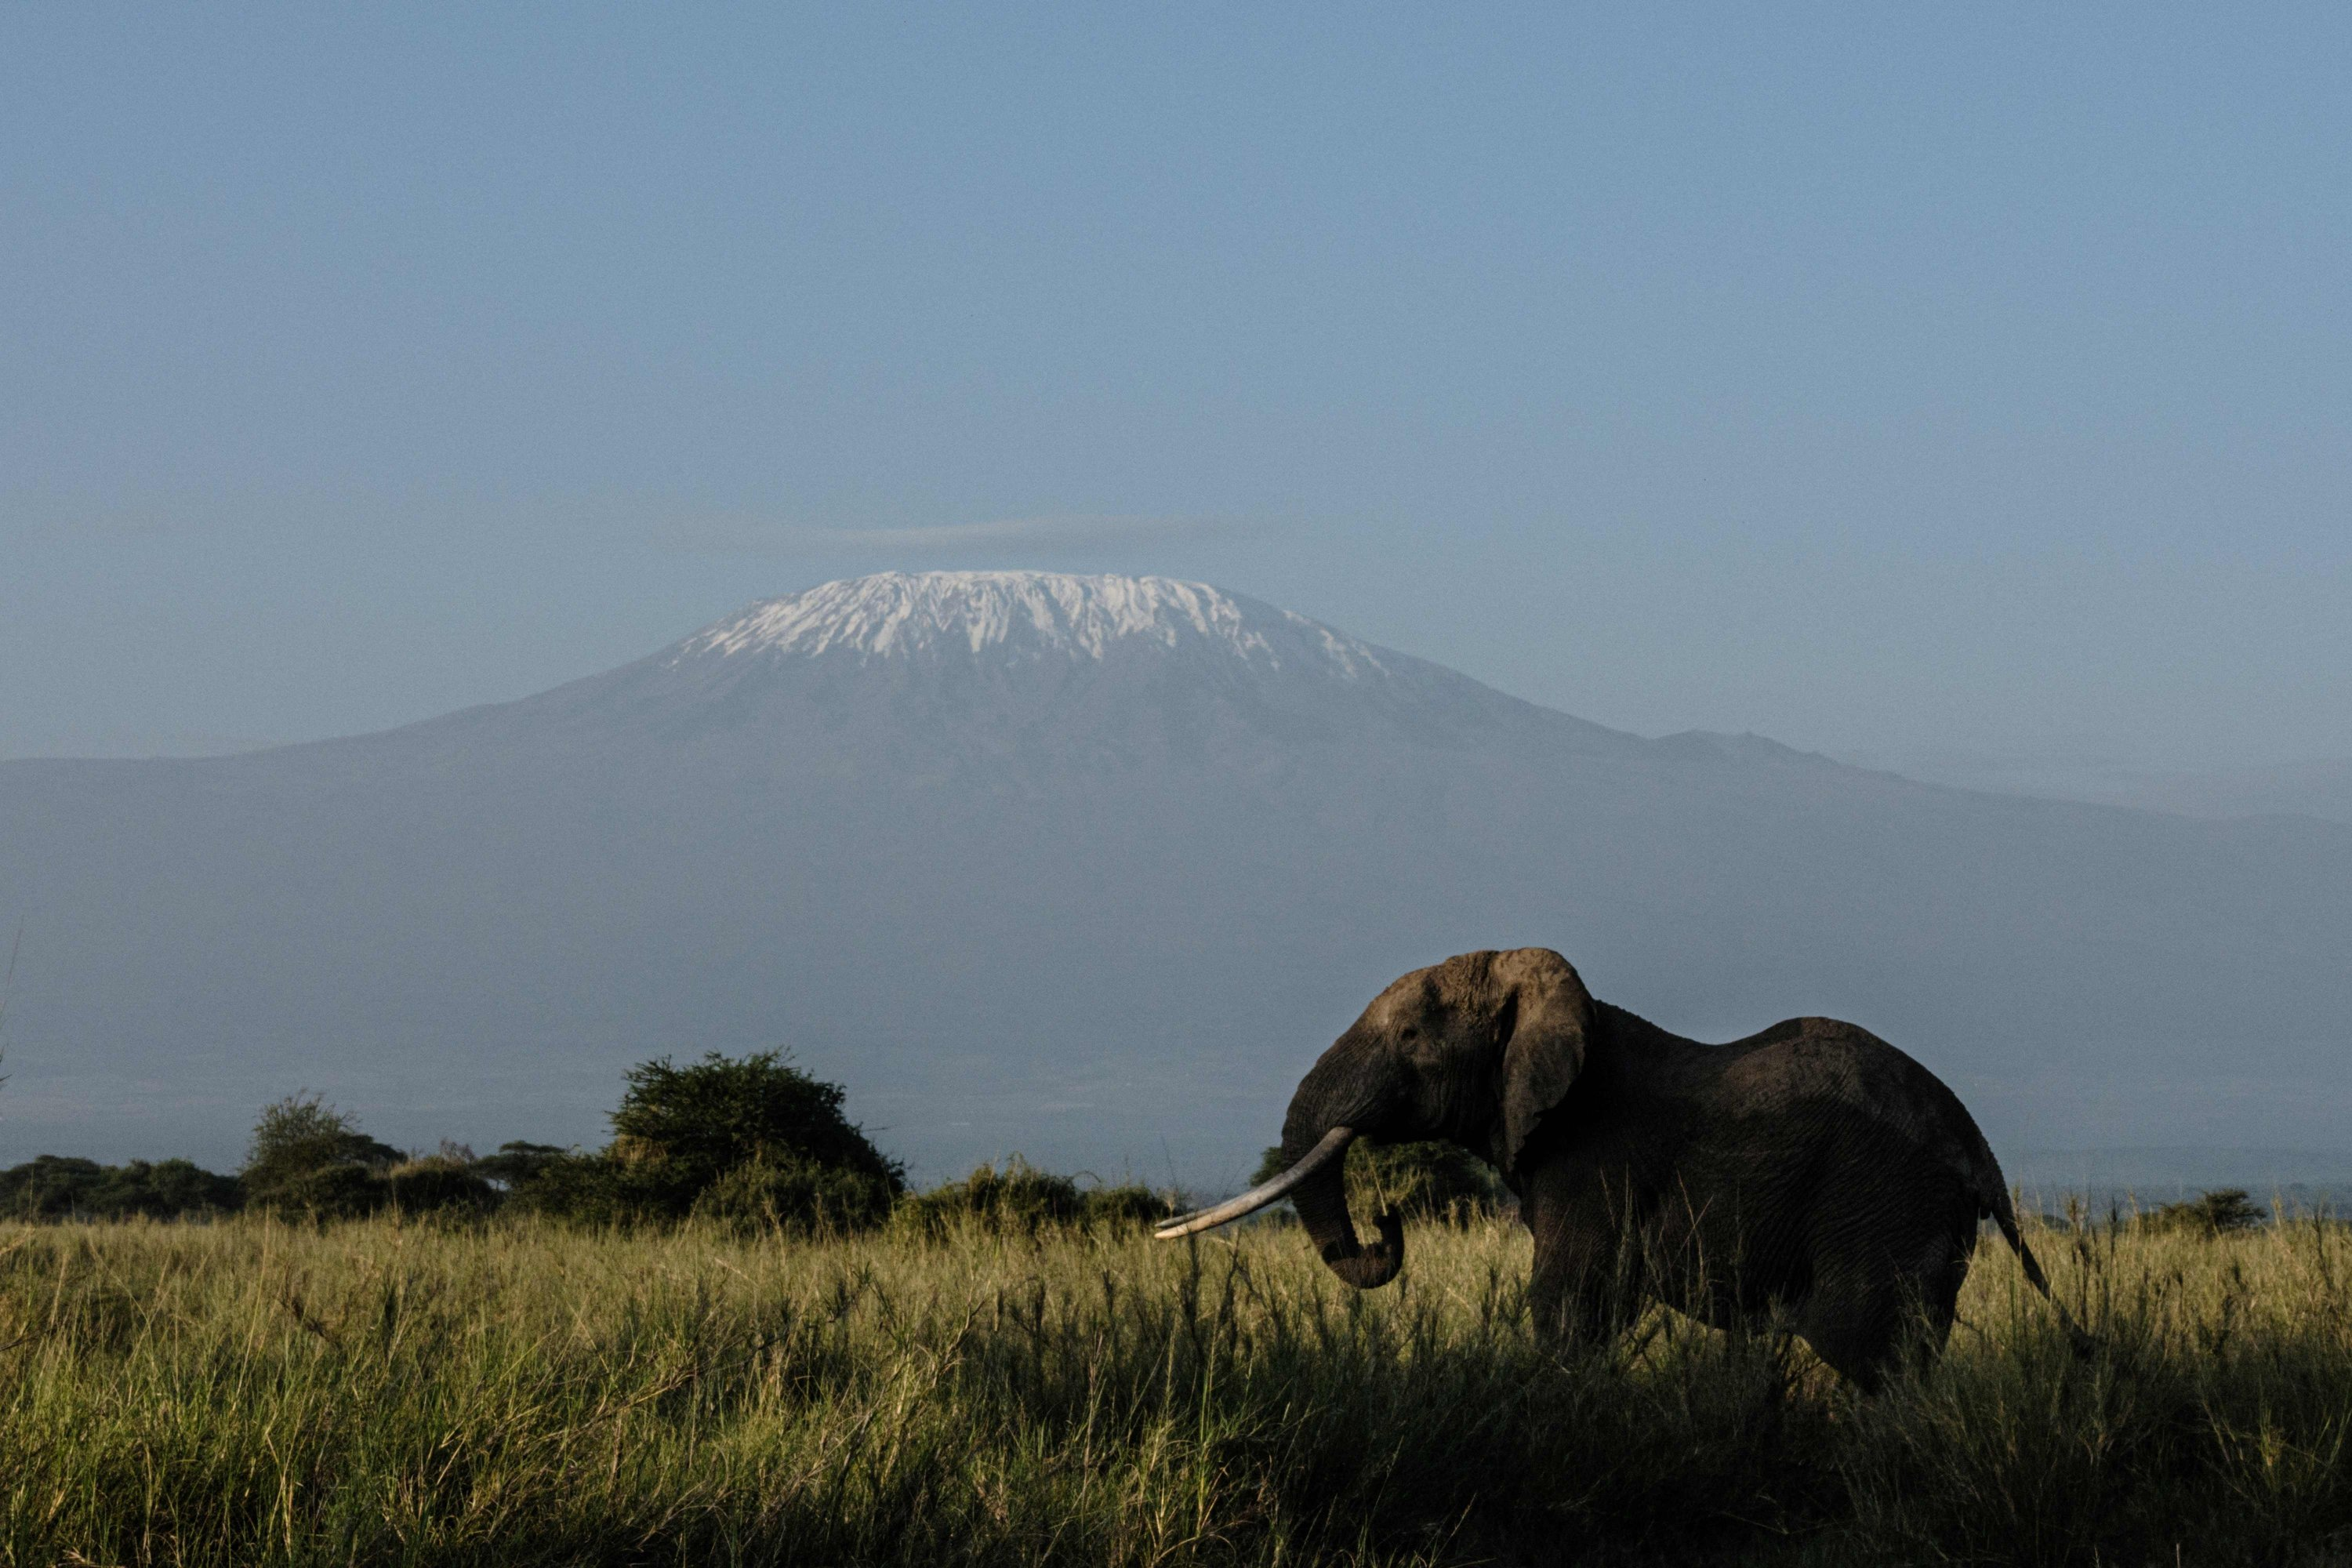 An elephant grazes with a view of Mount Kilimanjaro in the background at Kimana Sanctuary in Kimana, Kenya, March 3, 2021. (AFP Photo)